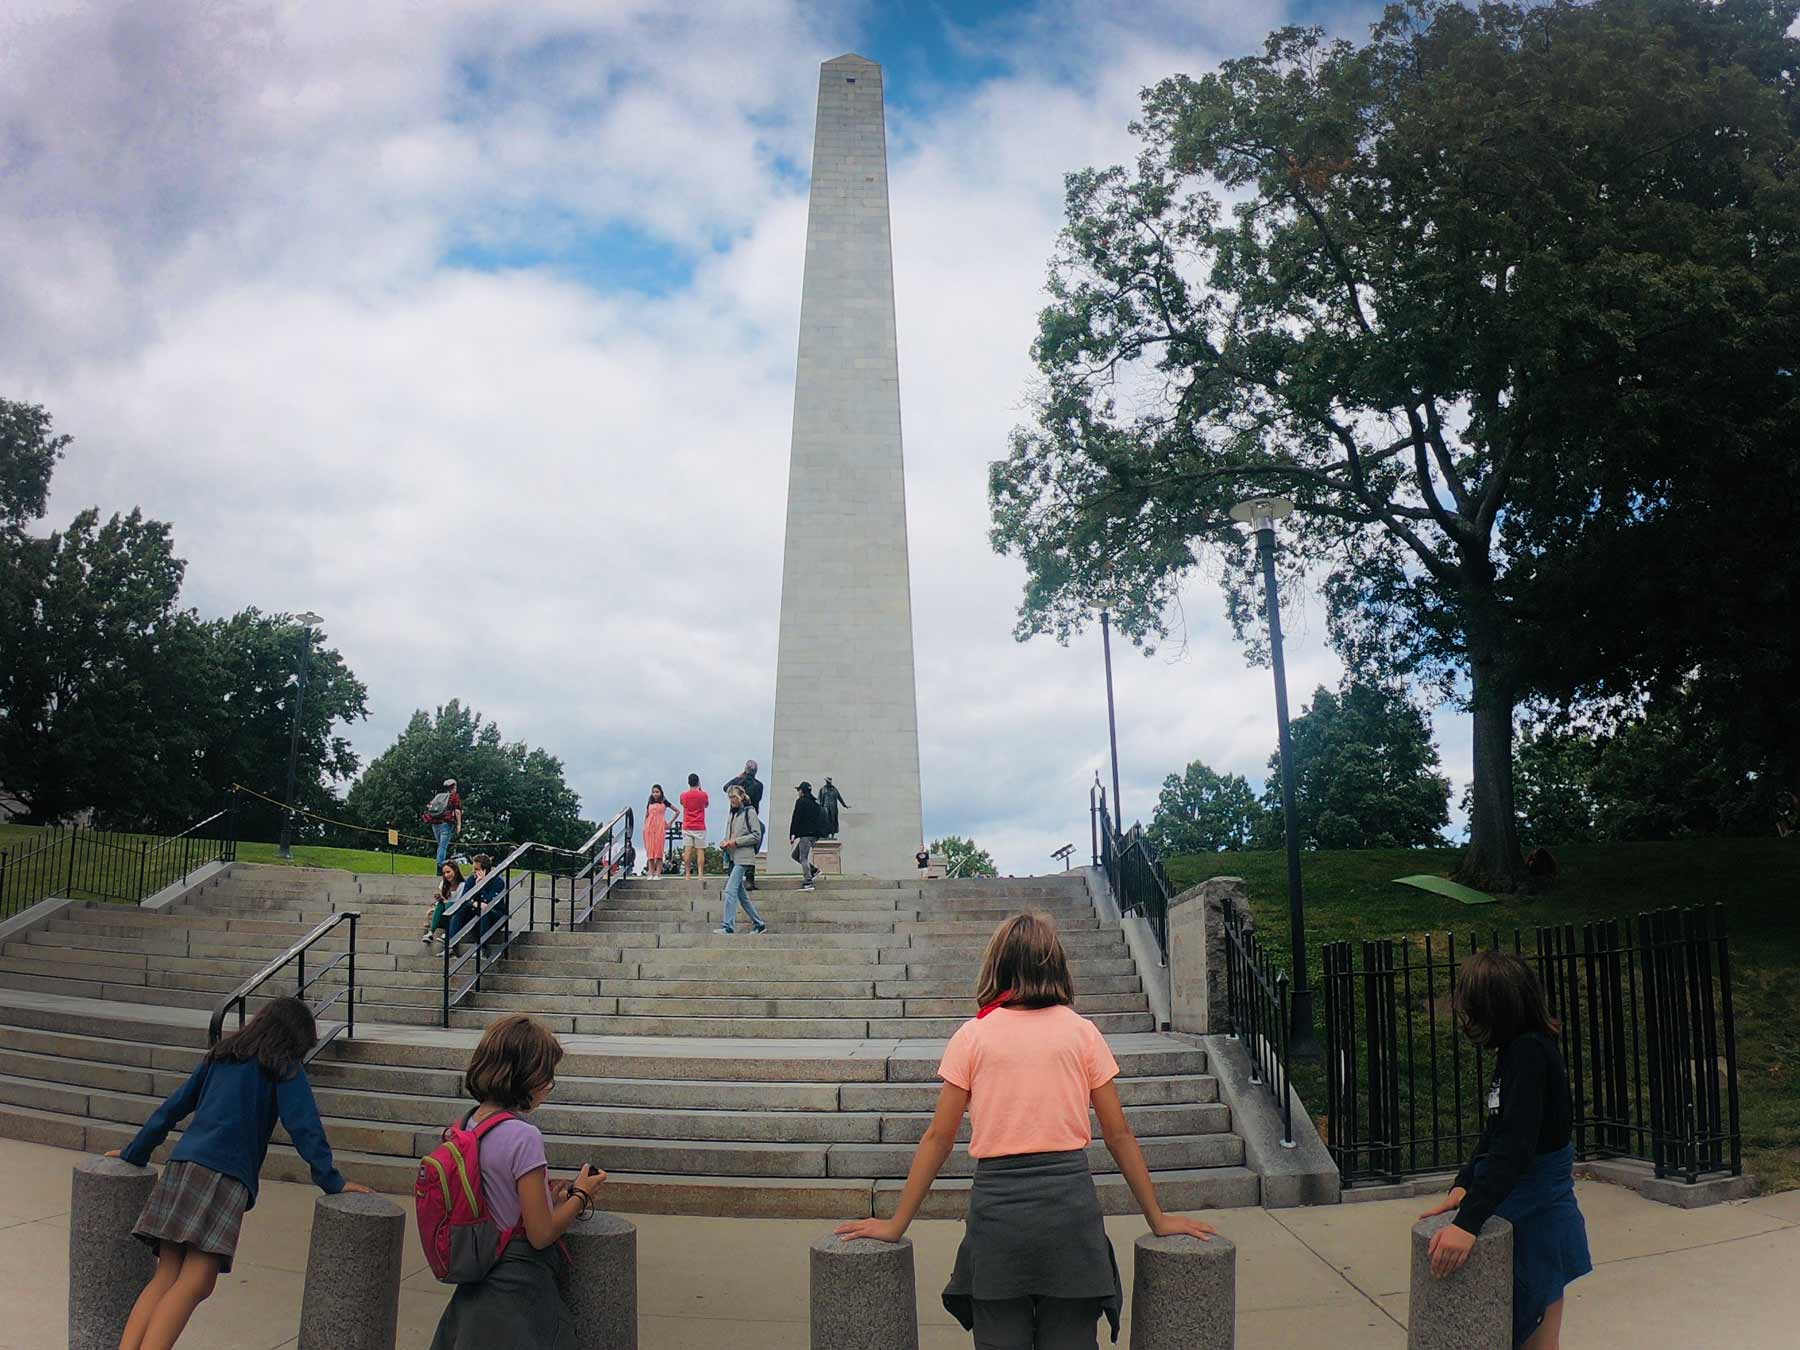 Teens looking at exterior of Bunker Hill Monument along the Freedom Trail in Boston, Massachusetts